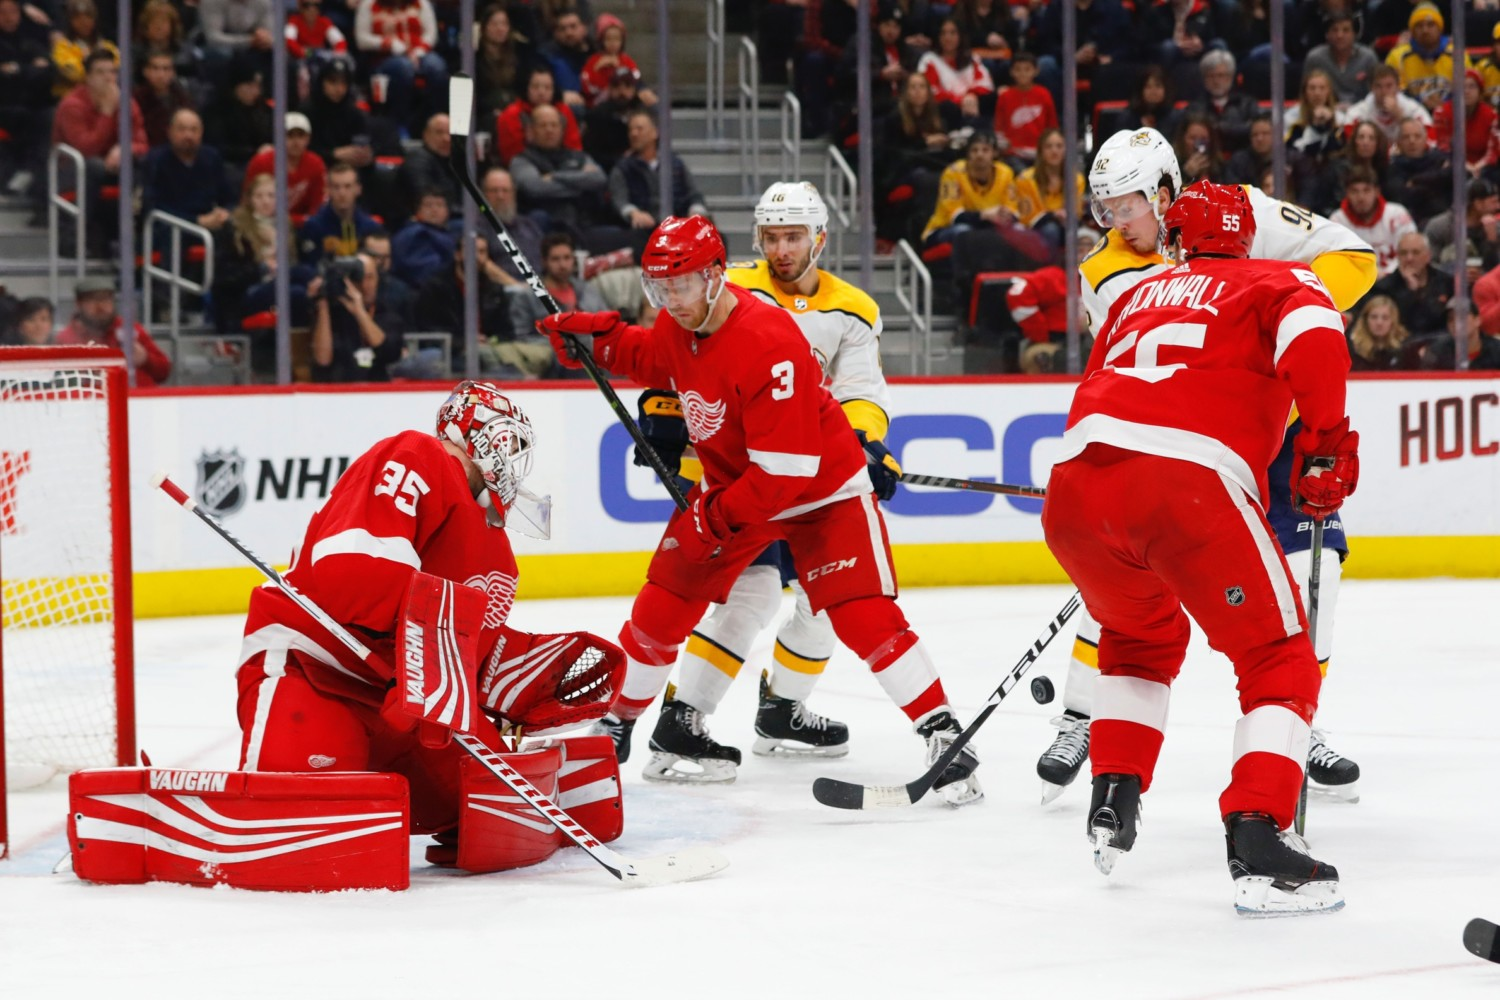 NHL Rumors: Detroit Red Wings GM On His Future, Trade Deadline and